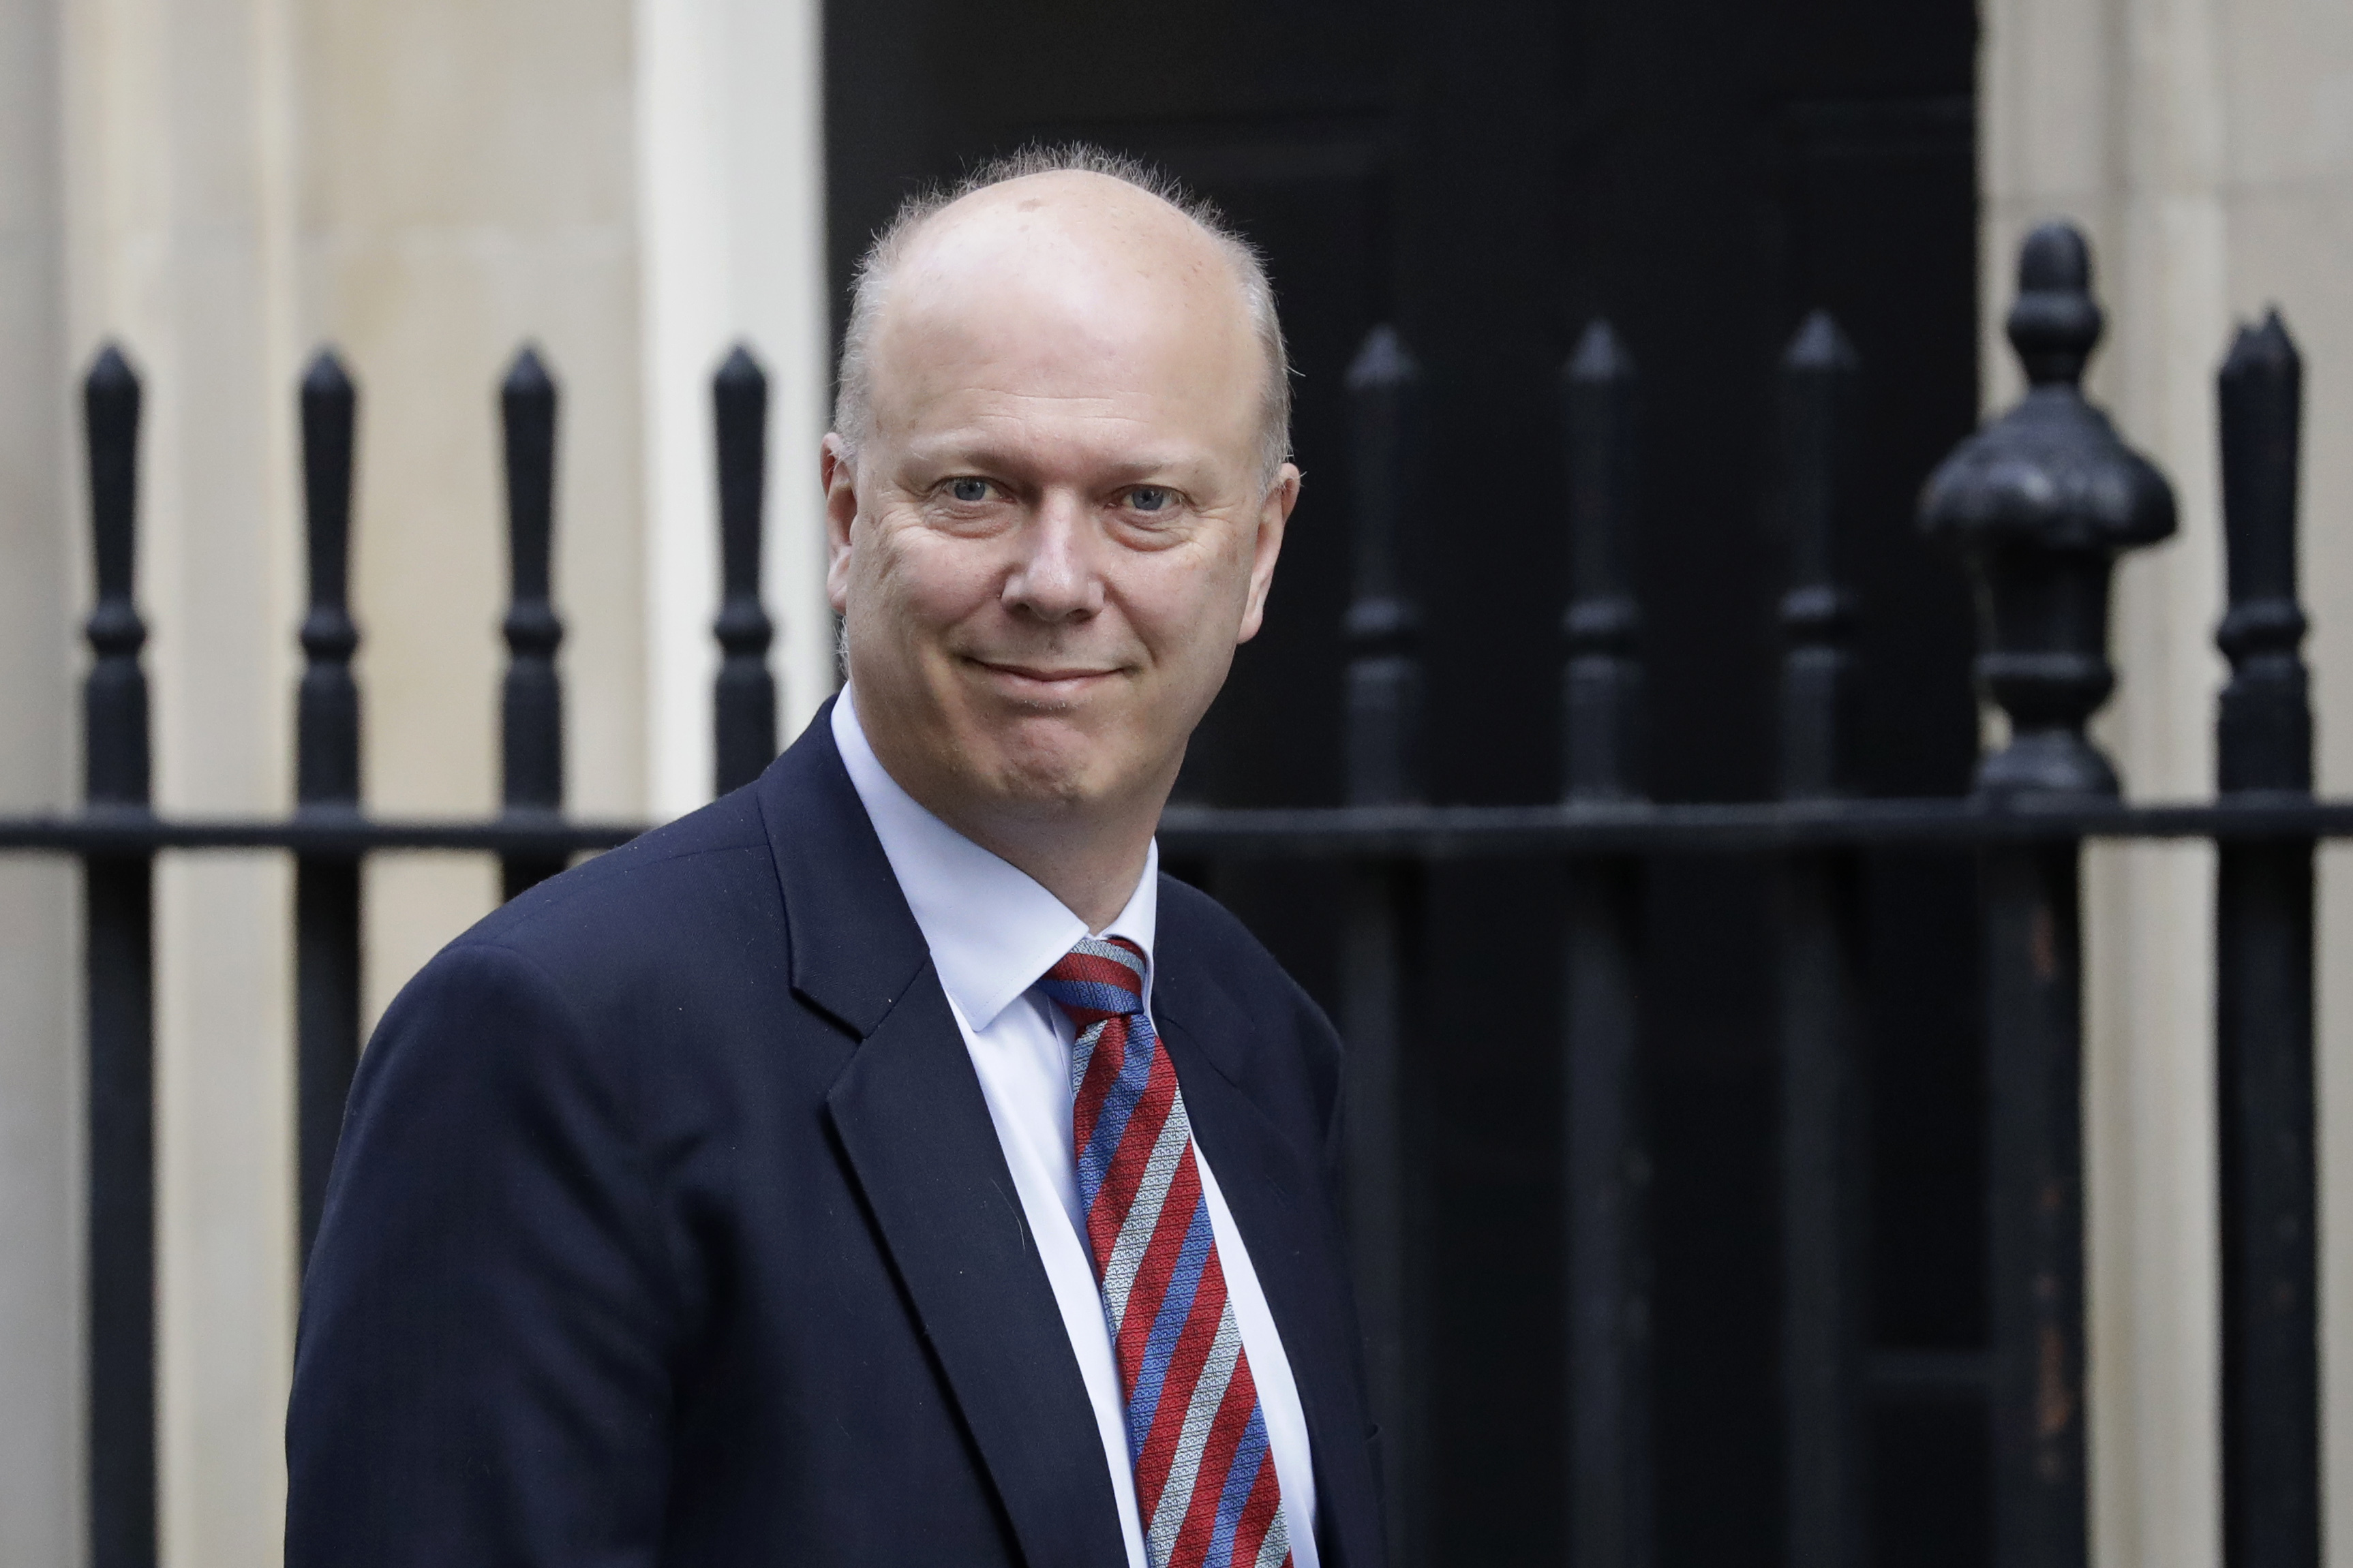 Britain's Transport Secretary Chris Grayling arrives for a cabinet meeting at 10 Downing Street in London, Tuesday, March 26, 2019. (AP Photo/Matt Dunham)